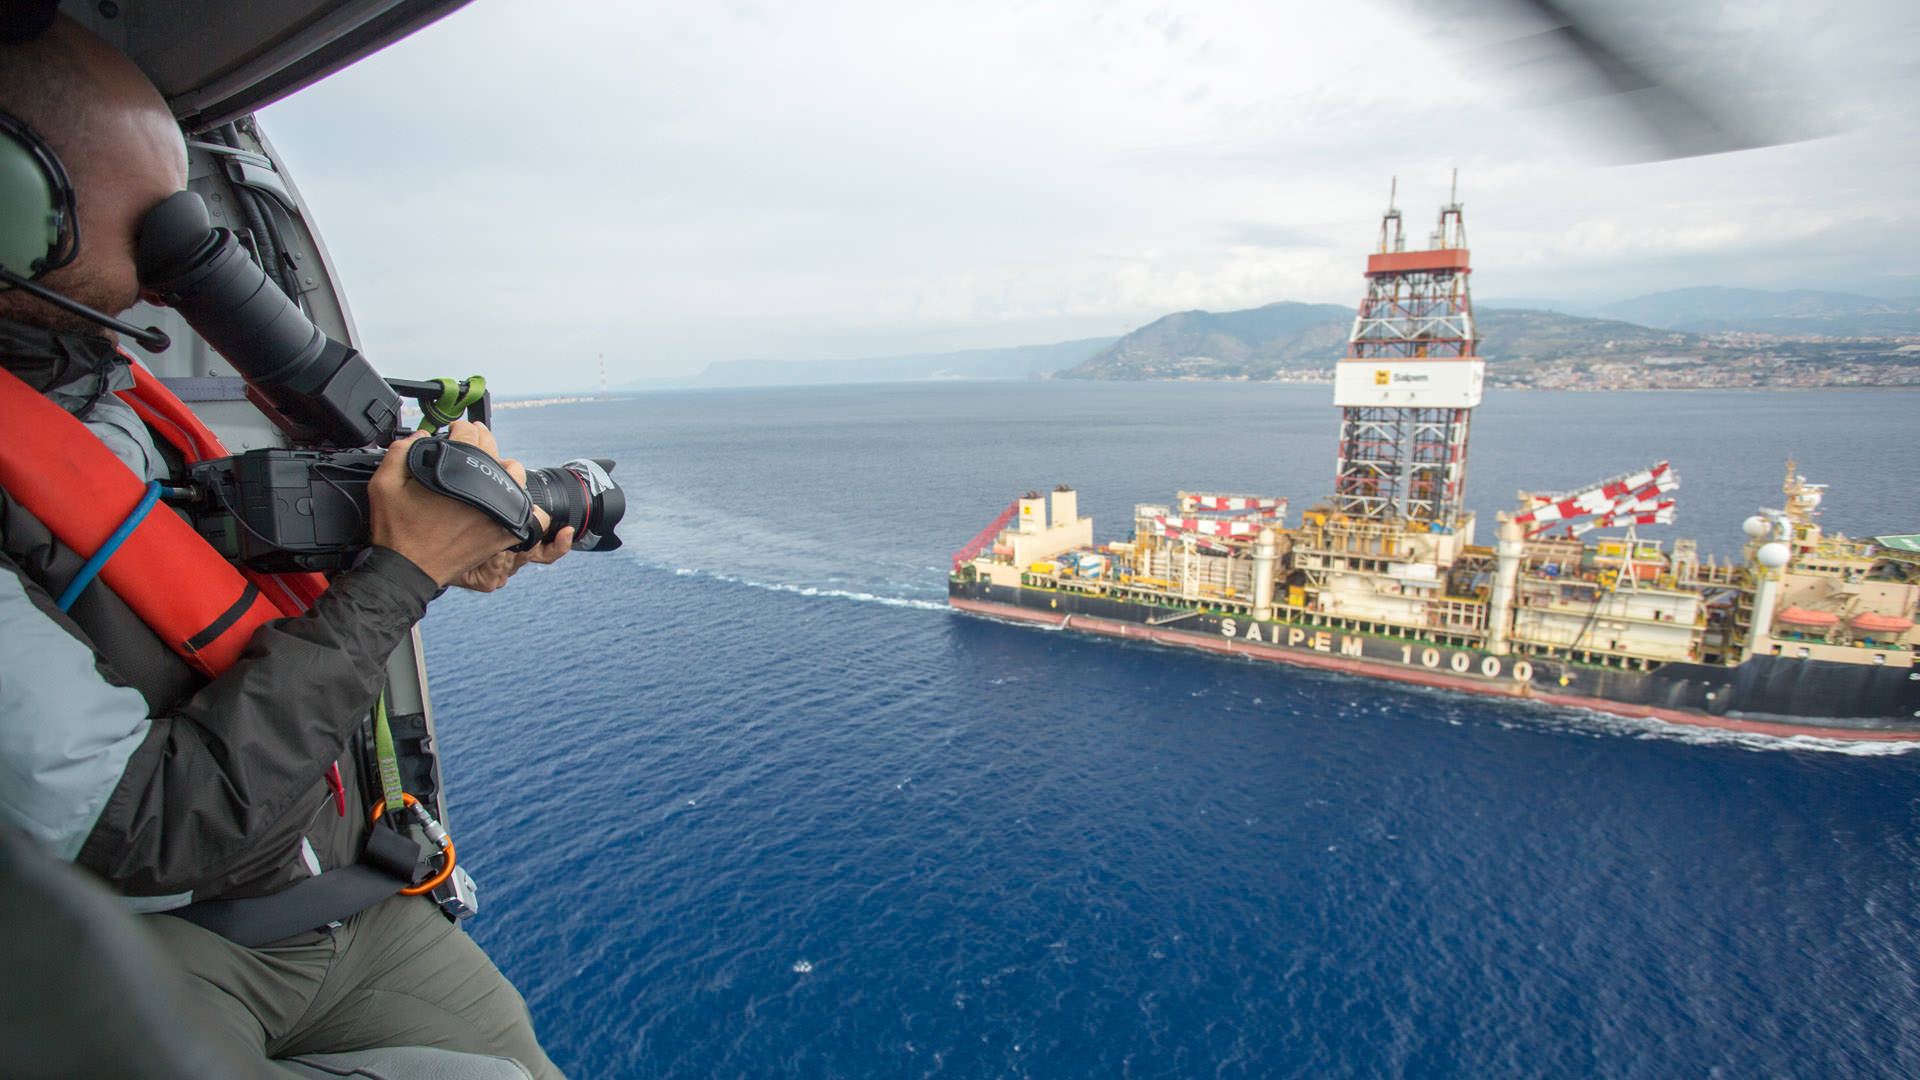 Saipem Stretto di Messina 05